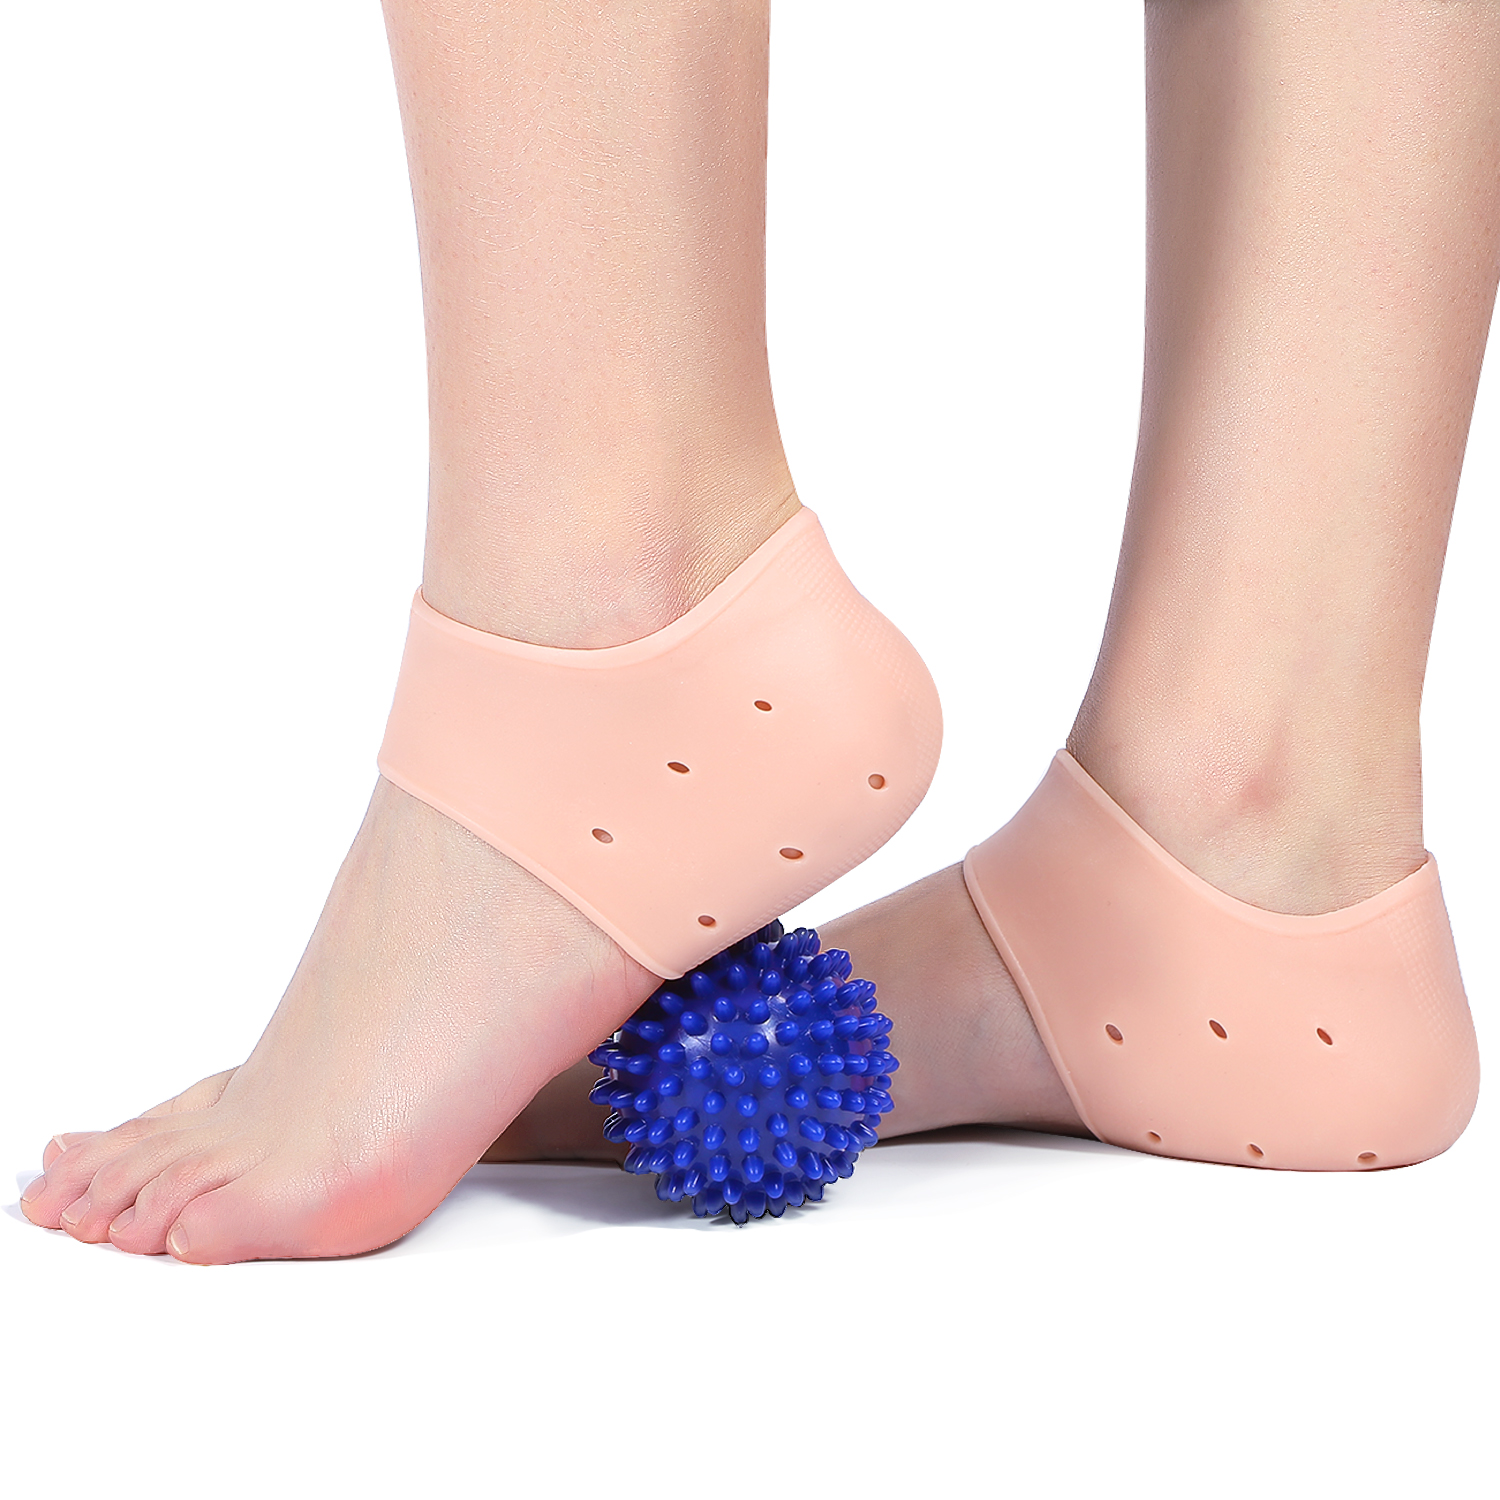 Dilwe 3/4 Arch Support Shoes Insole, Women 2-7.5 Shoes Size Ankle Gel Support Pain Relief Protective Silicone Plantar Fasciitis Heel Spur US